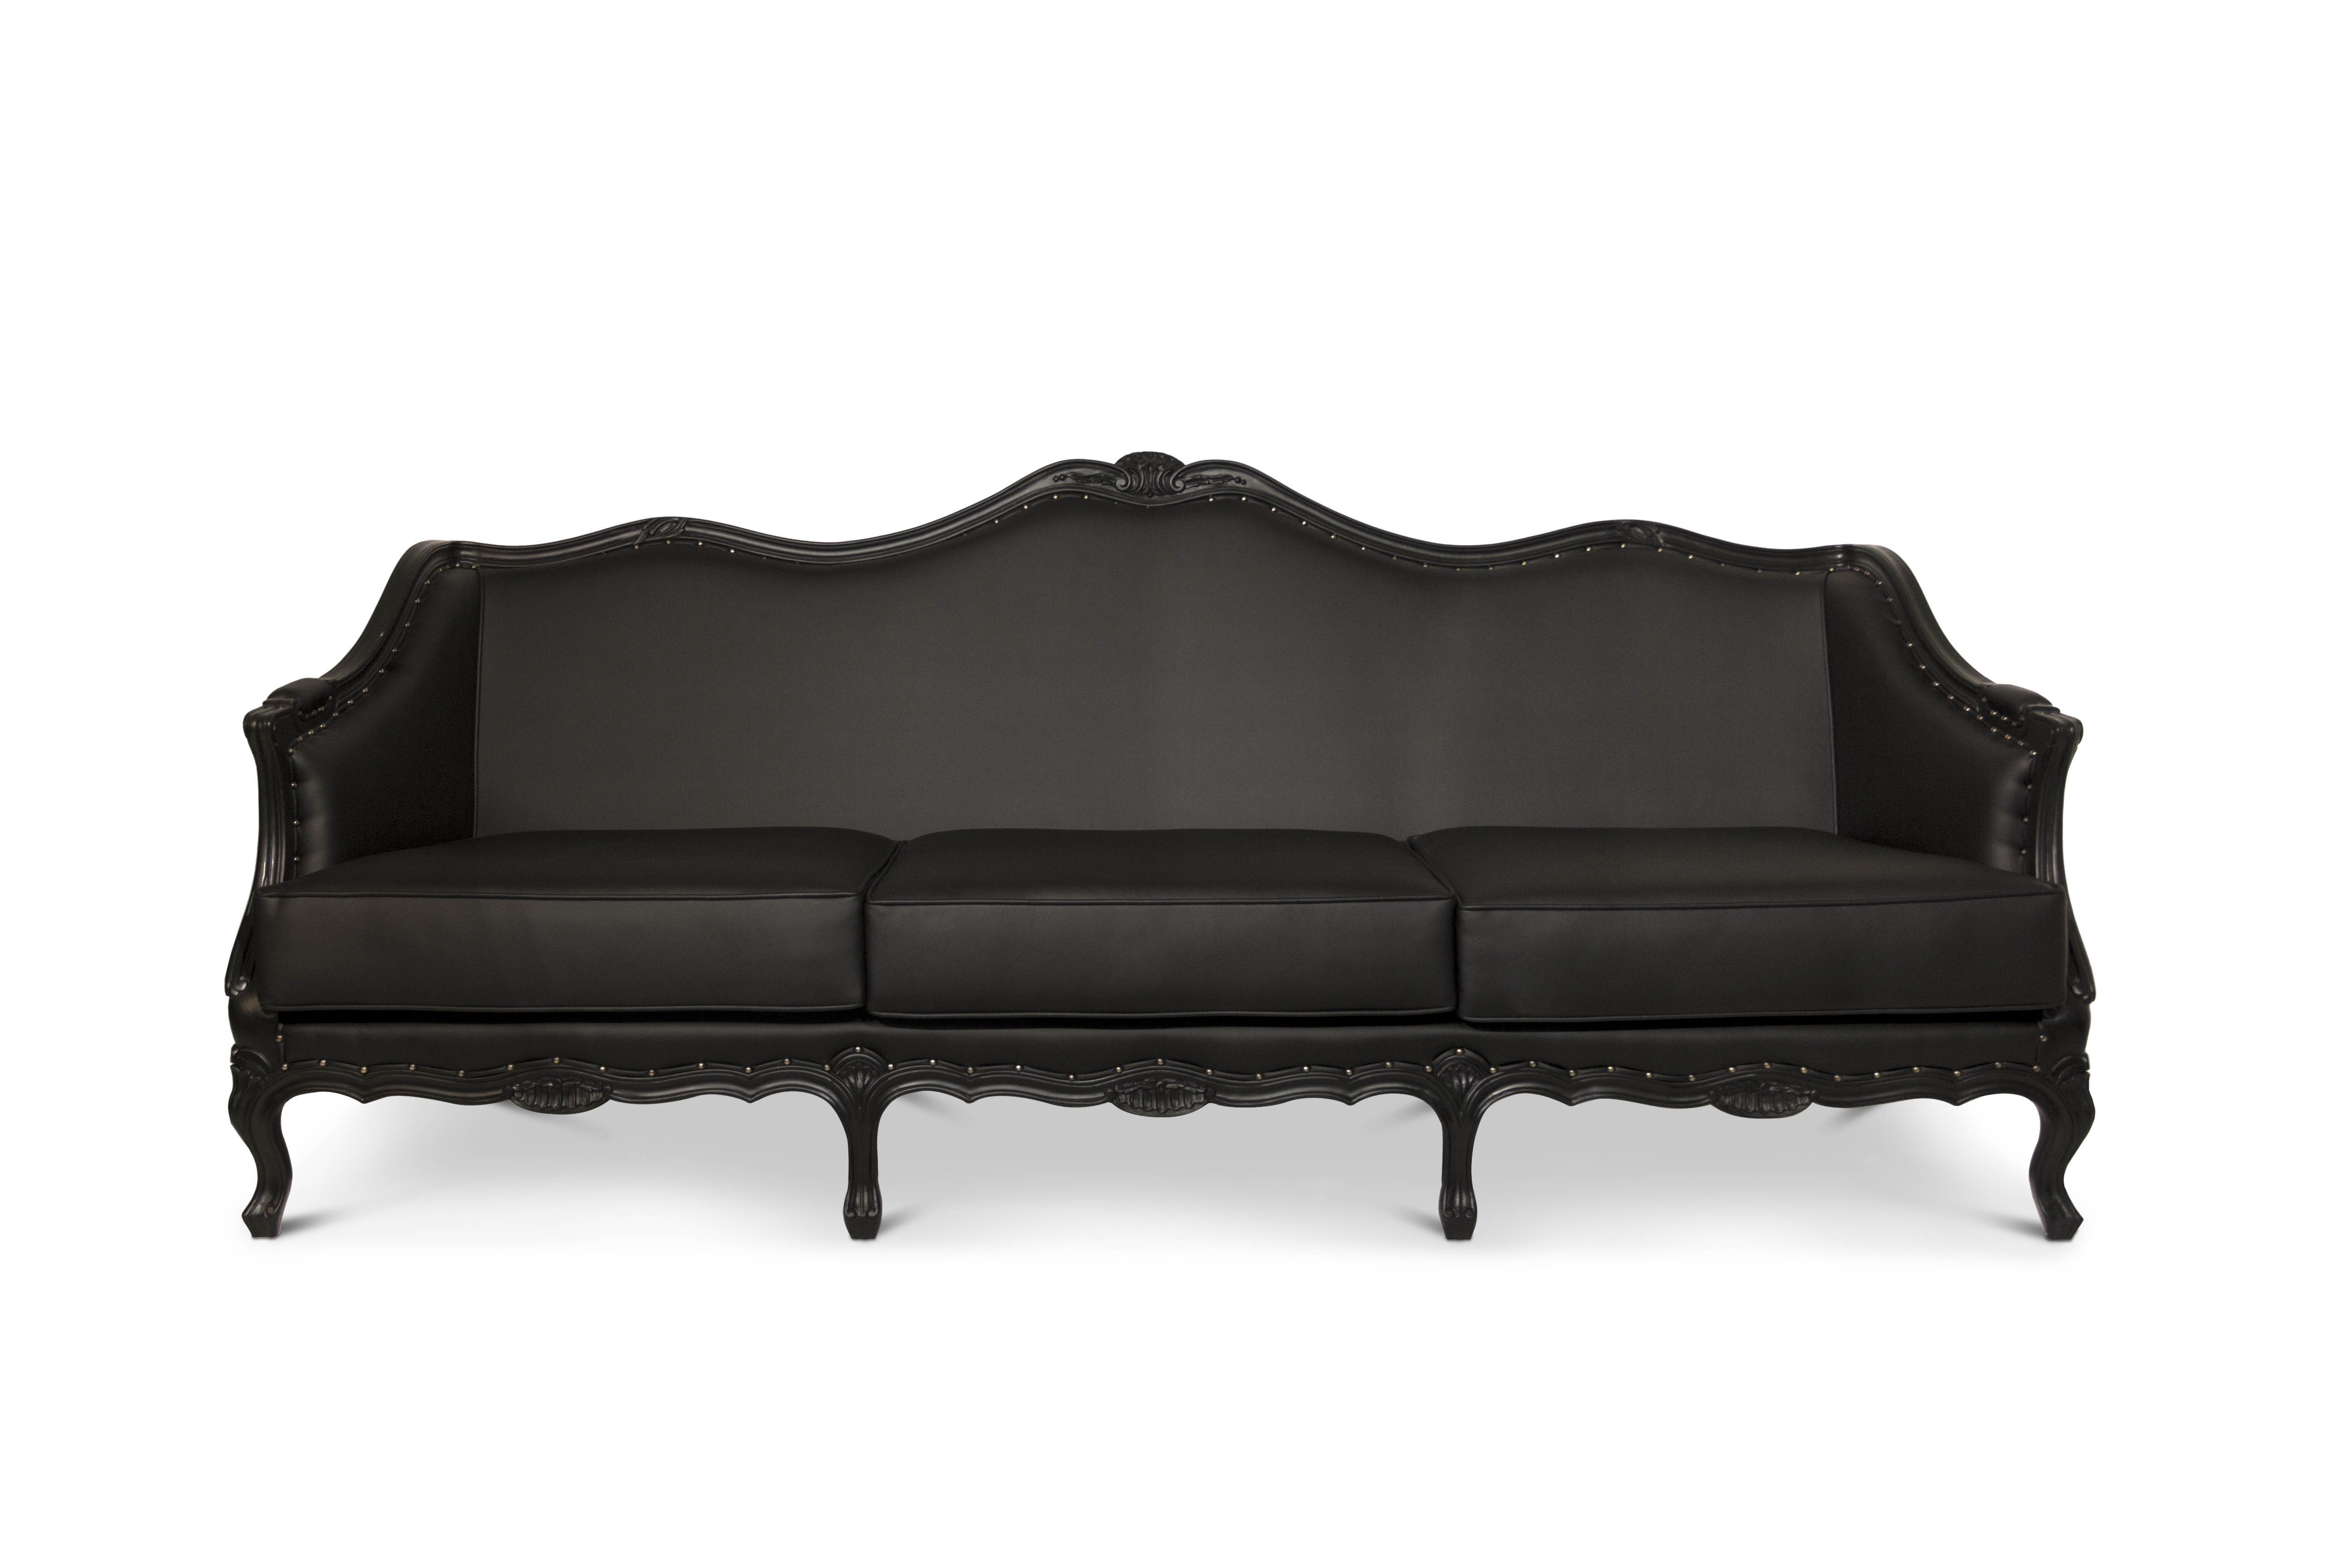 Modern Sofas Ottawa Ottawa 3 Seater Sofa Modern Contemporary Furniture By Brabbu